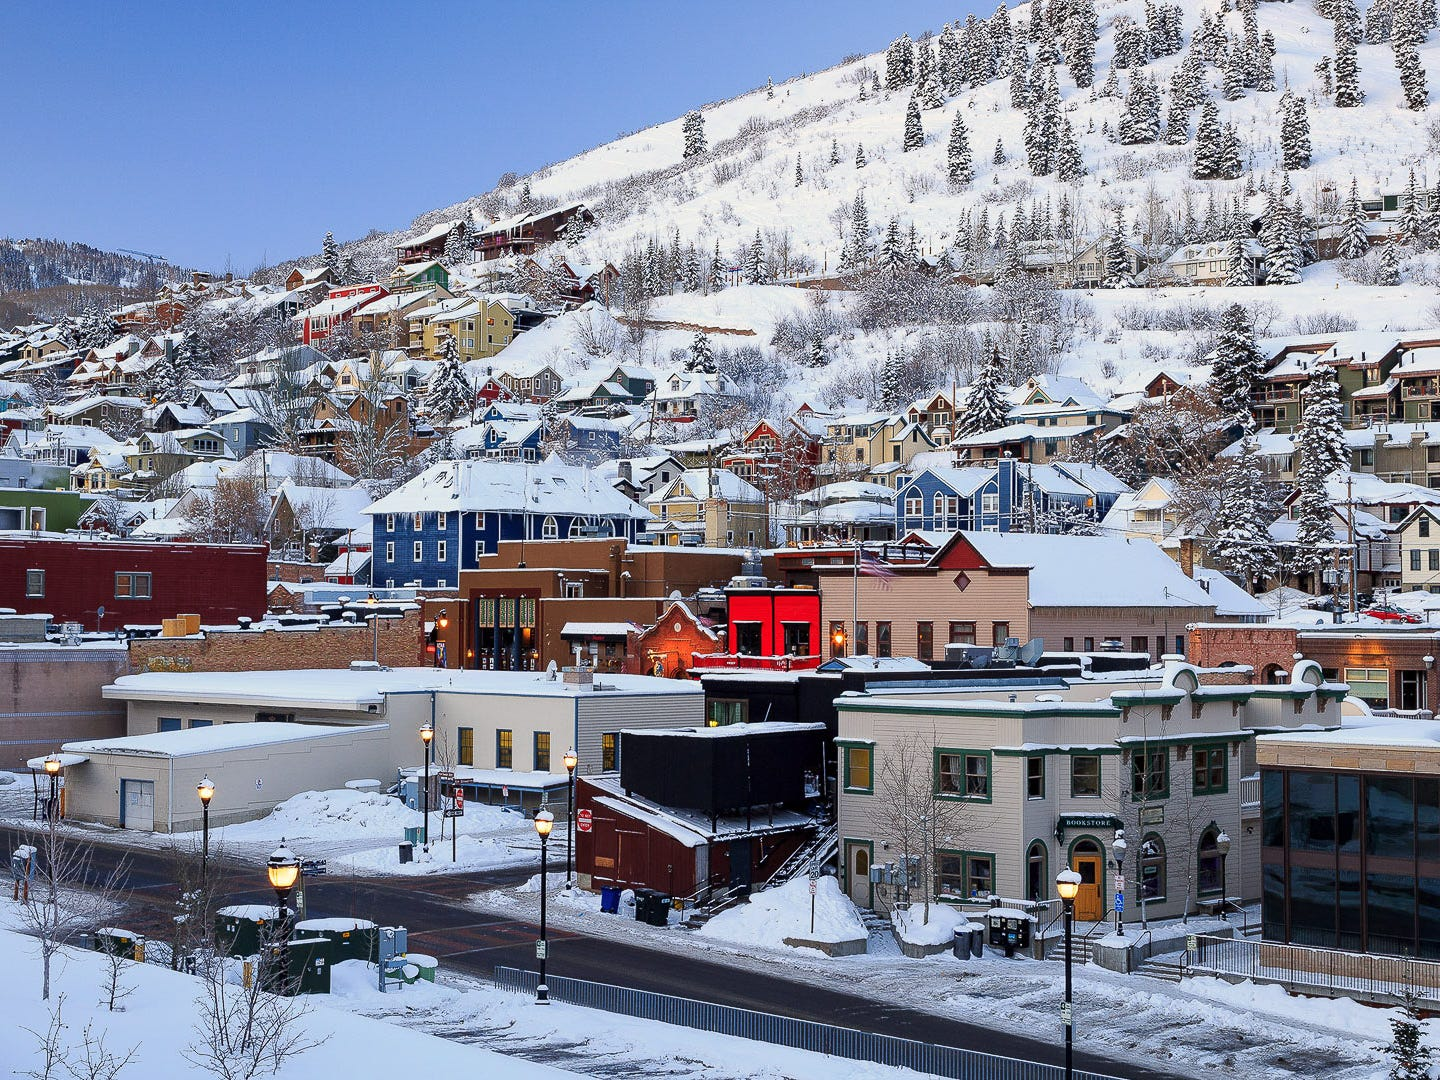 No. 12: Park City, Utah. Thanksgiving trip cost: $1,018. Christmas trip cost: $2,196.50. Winter is peak season in this haven for skiers, who relish the city's average annual snowfall of 340 inches. Plus, non-skiers can enjoy Park City by visiting one of America's most charming main streets. However, this destination isn't ideal for people who are looking for an affordable Christmas vacation. Hotels are the fourth-most expensive in Park City during Christmas compared to other destinations in this study.